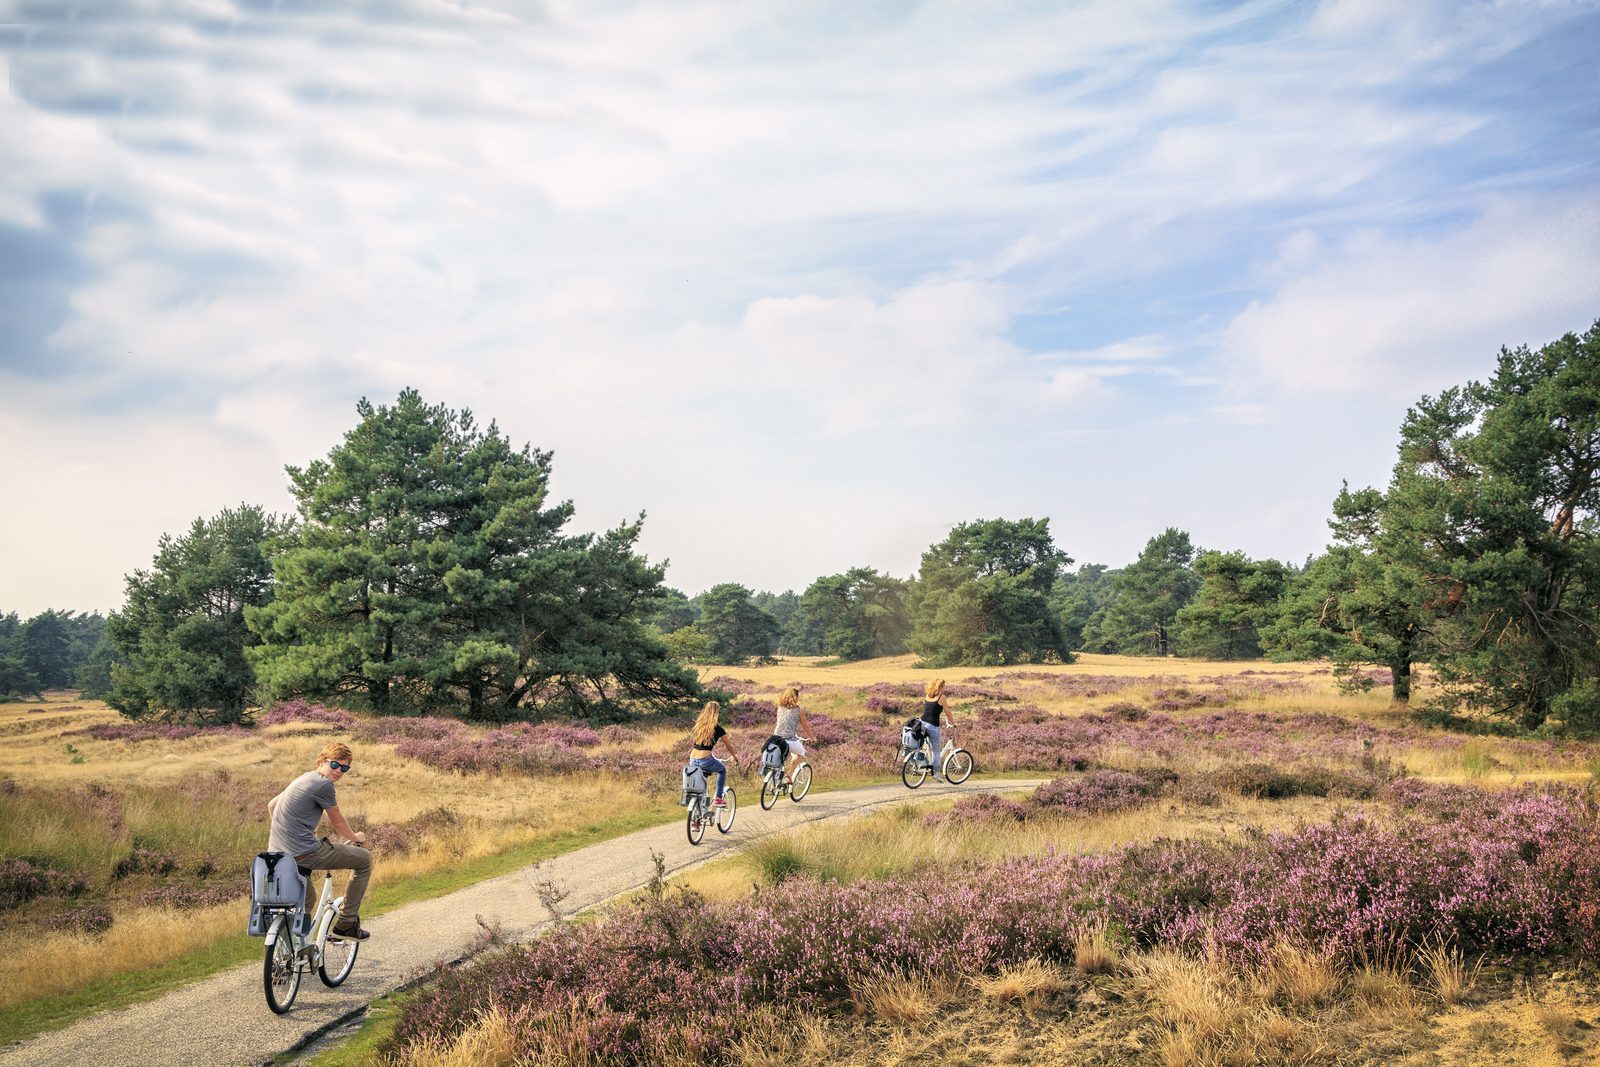 Biking at de Veluwe